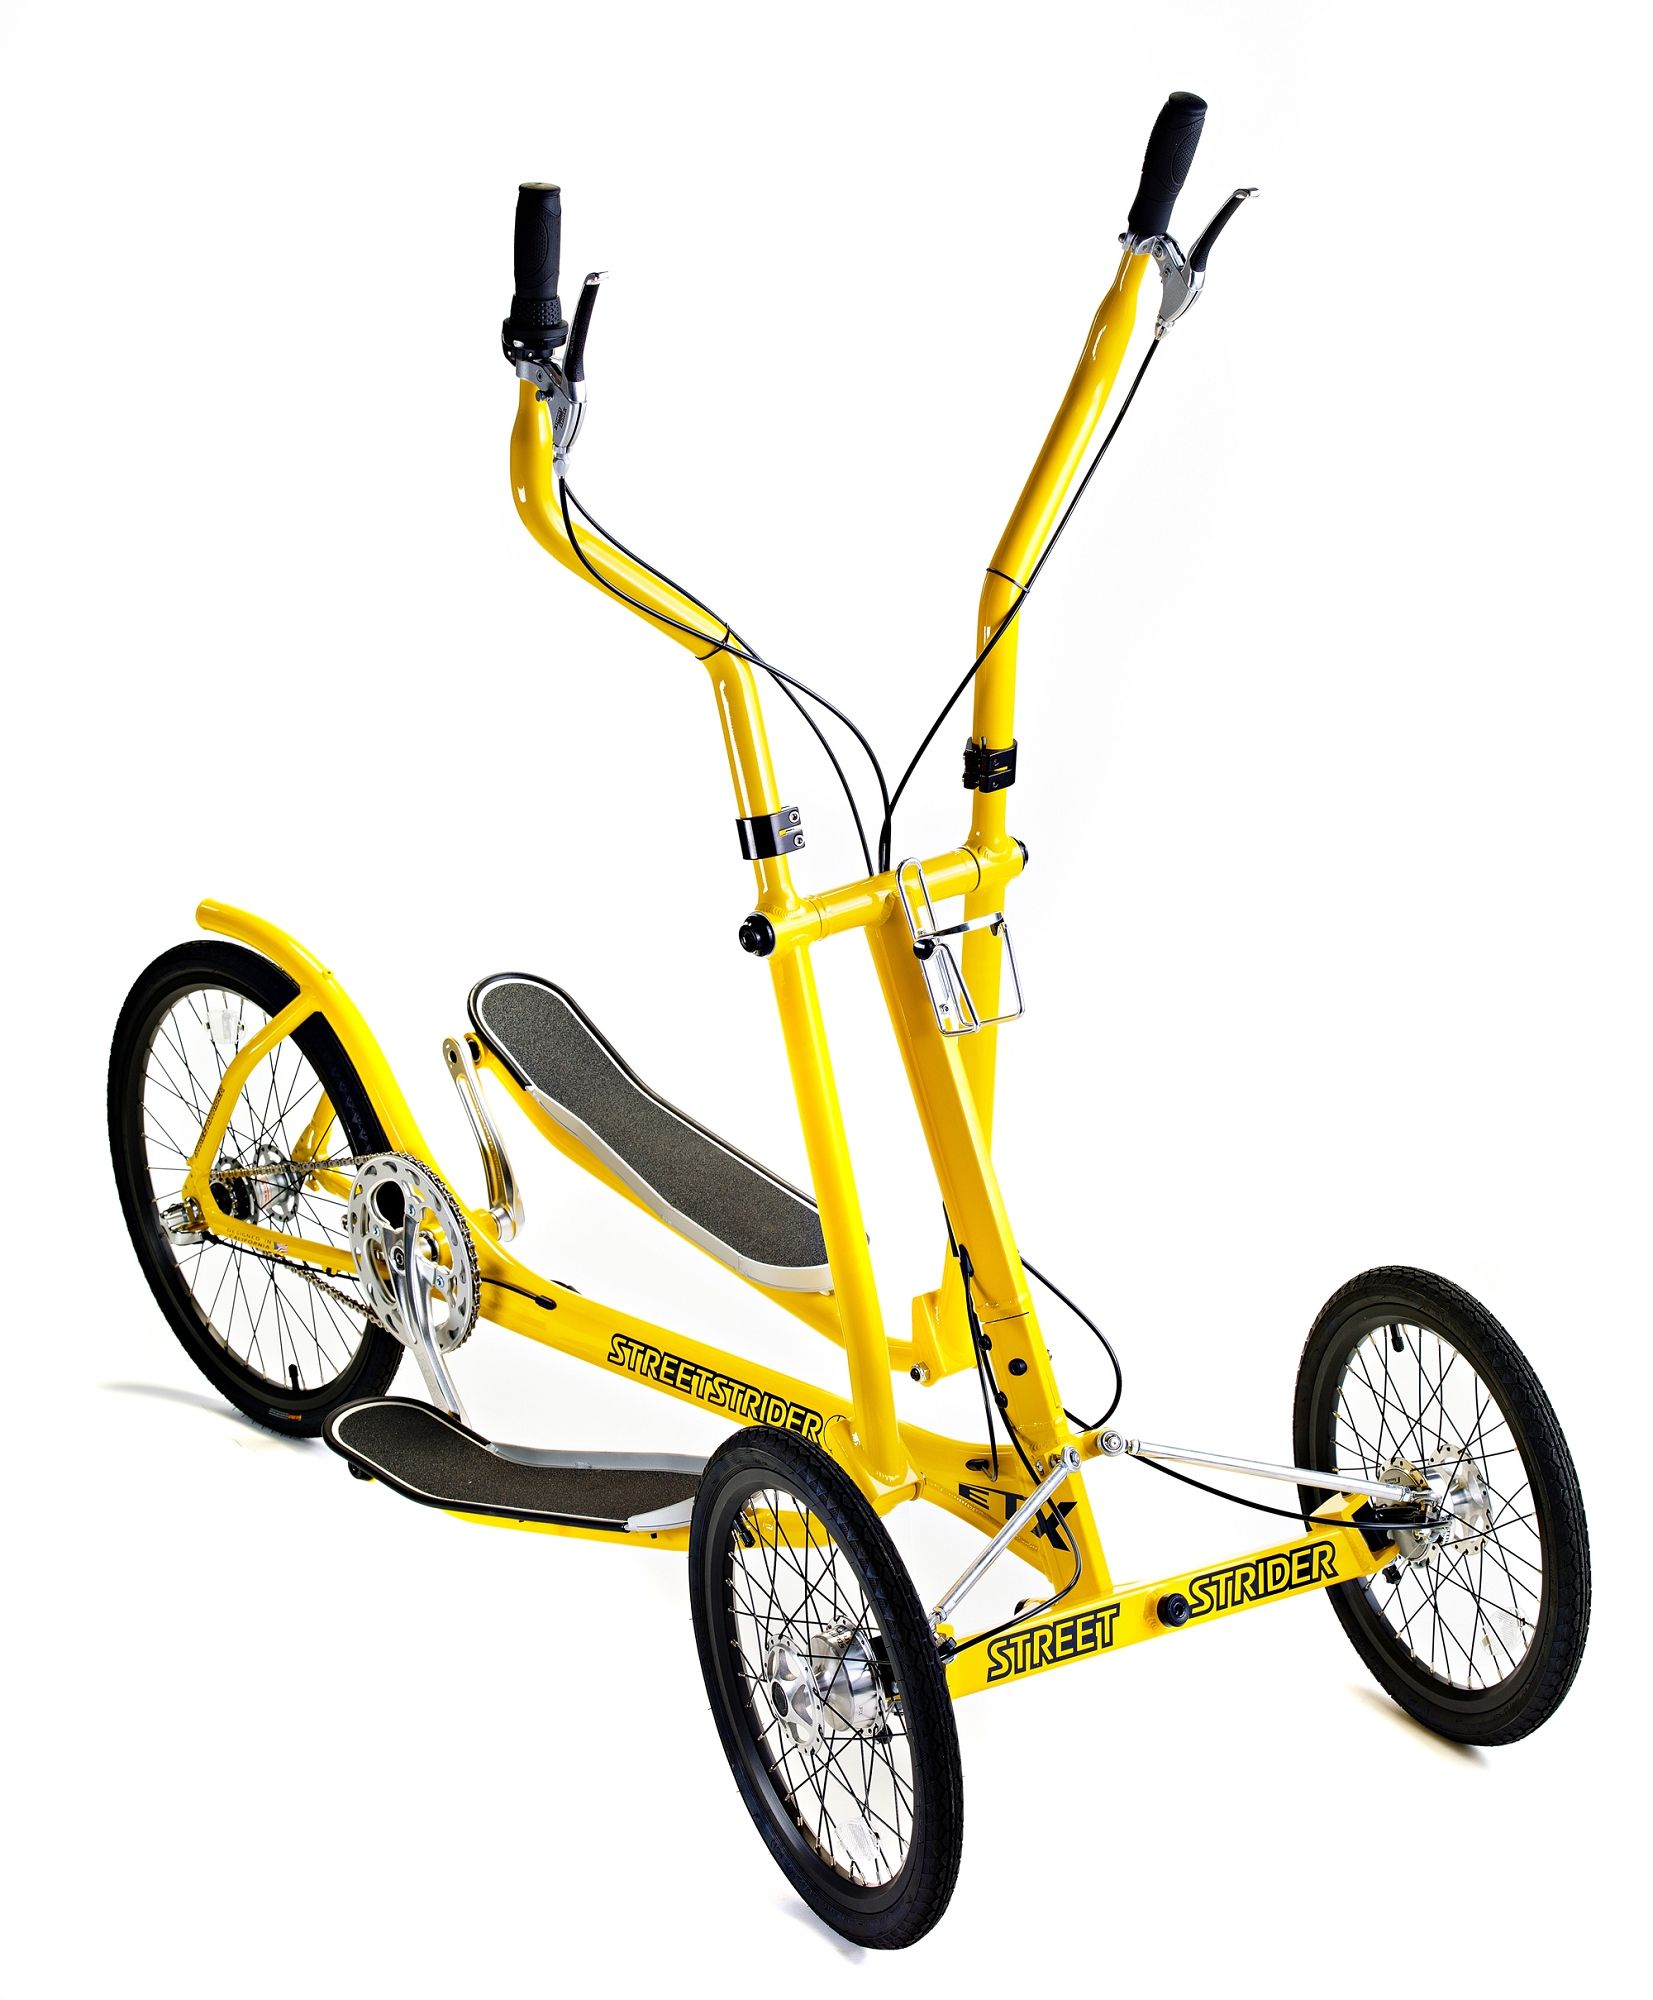 Its An Eliptical That You Can Take Out As A Stand Up Bike And Mount On The Indoor Mount For Stationar Design De Bicicleta Carros De Pedais Bikes Personalizadas